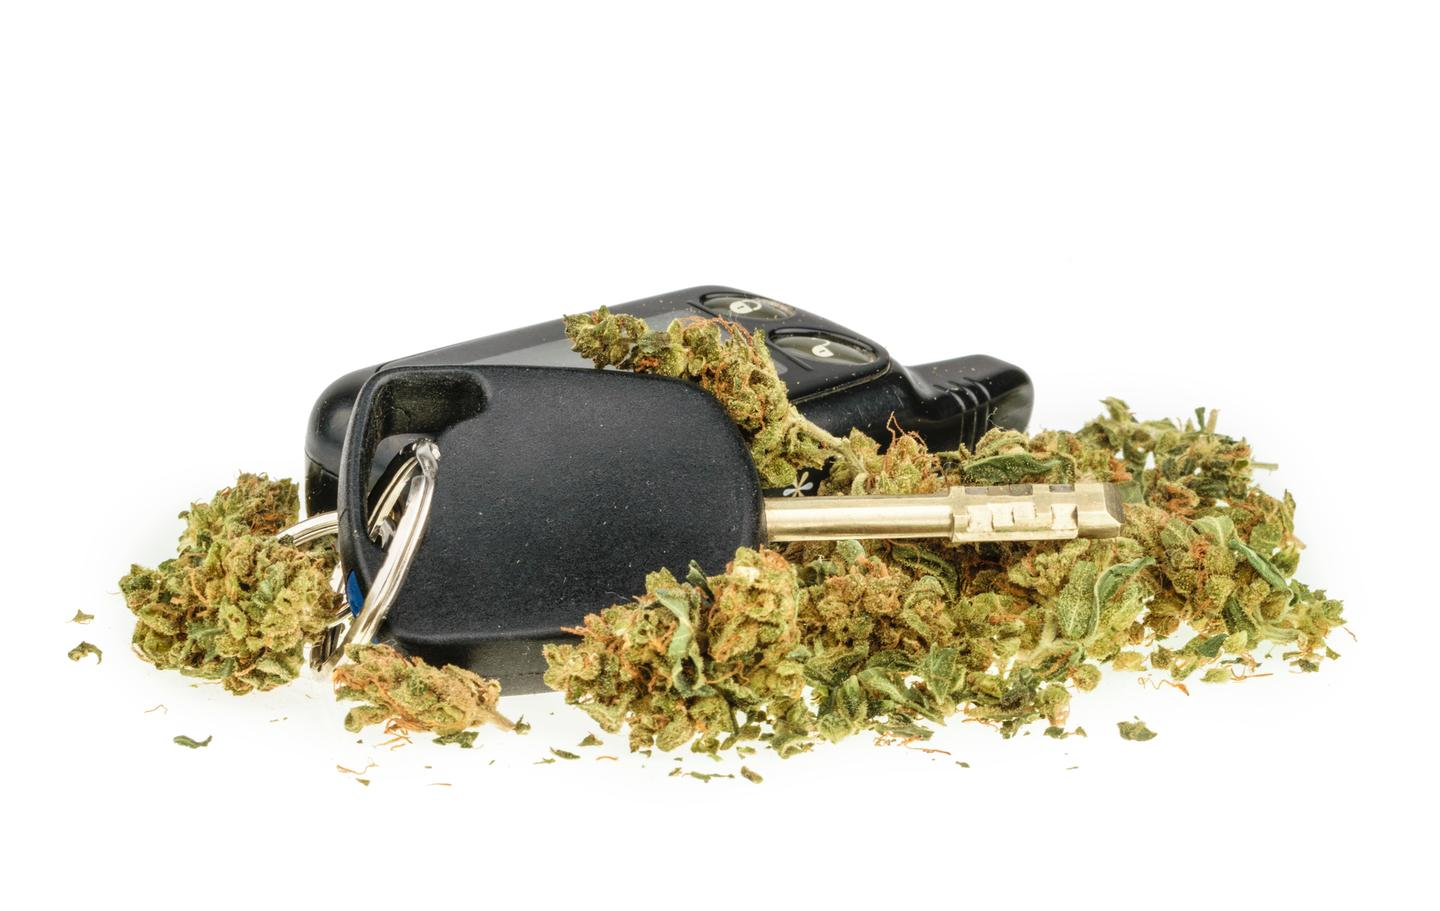 A new study detected no impairments to driving when CBD was consumed alone